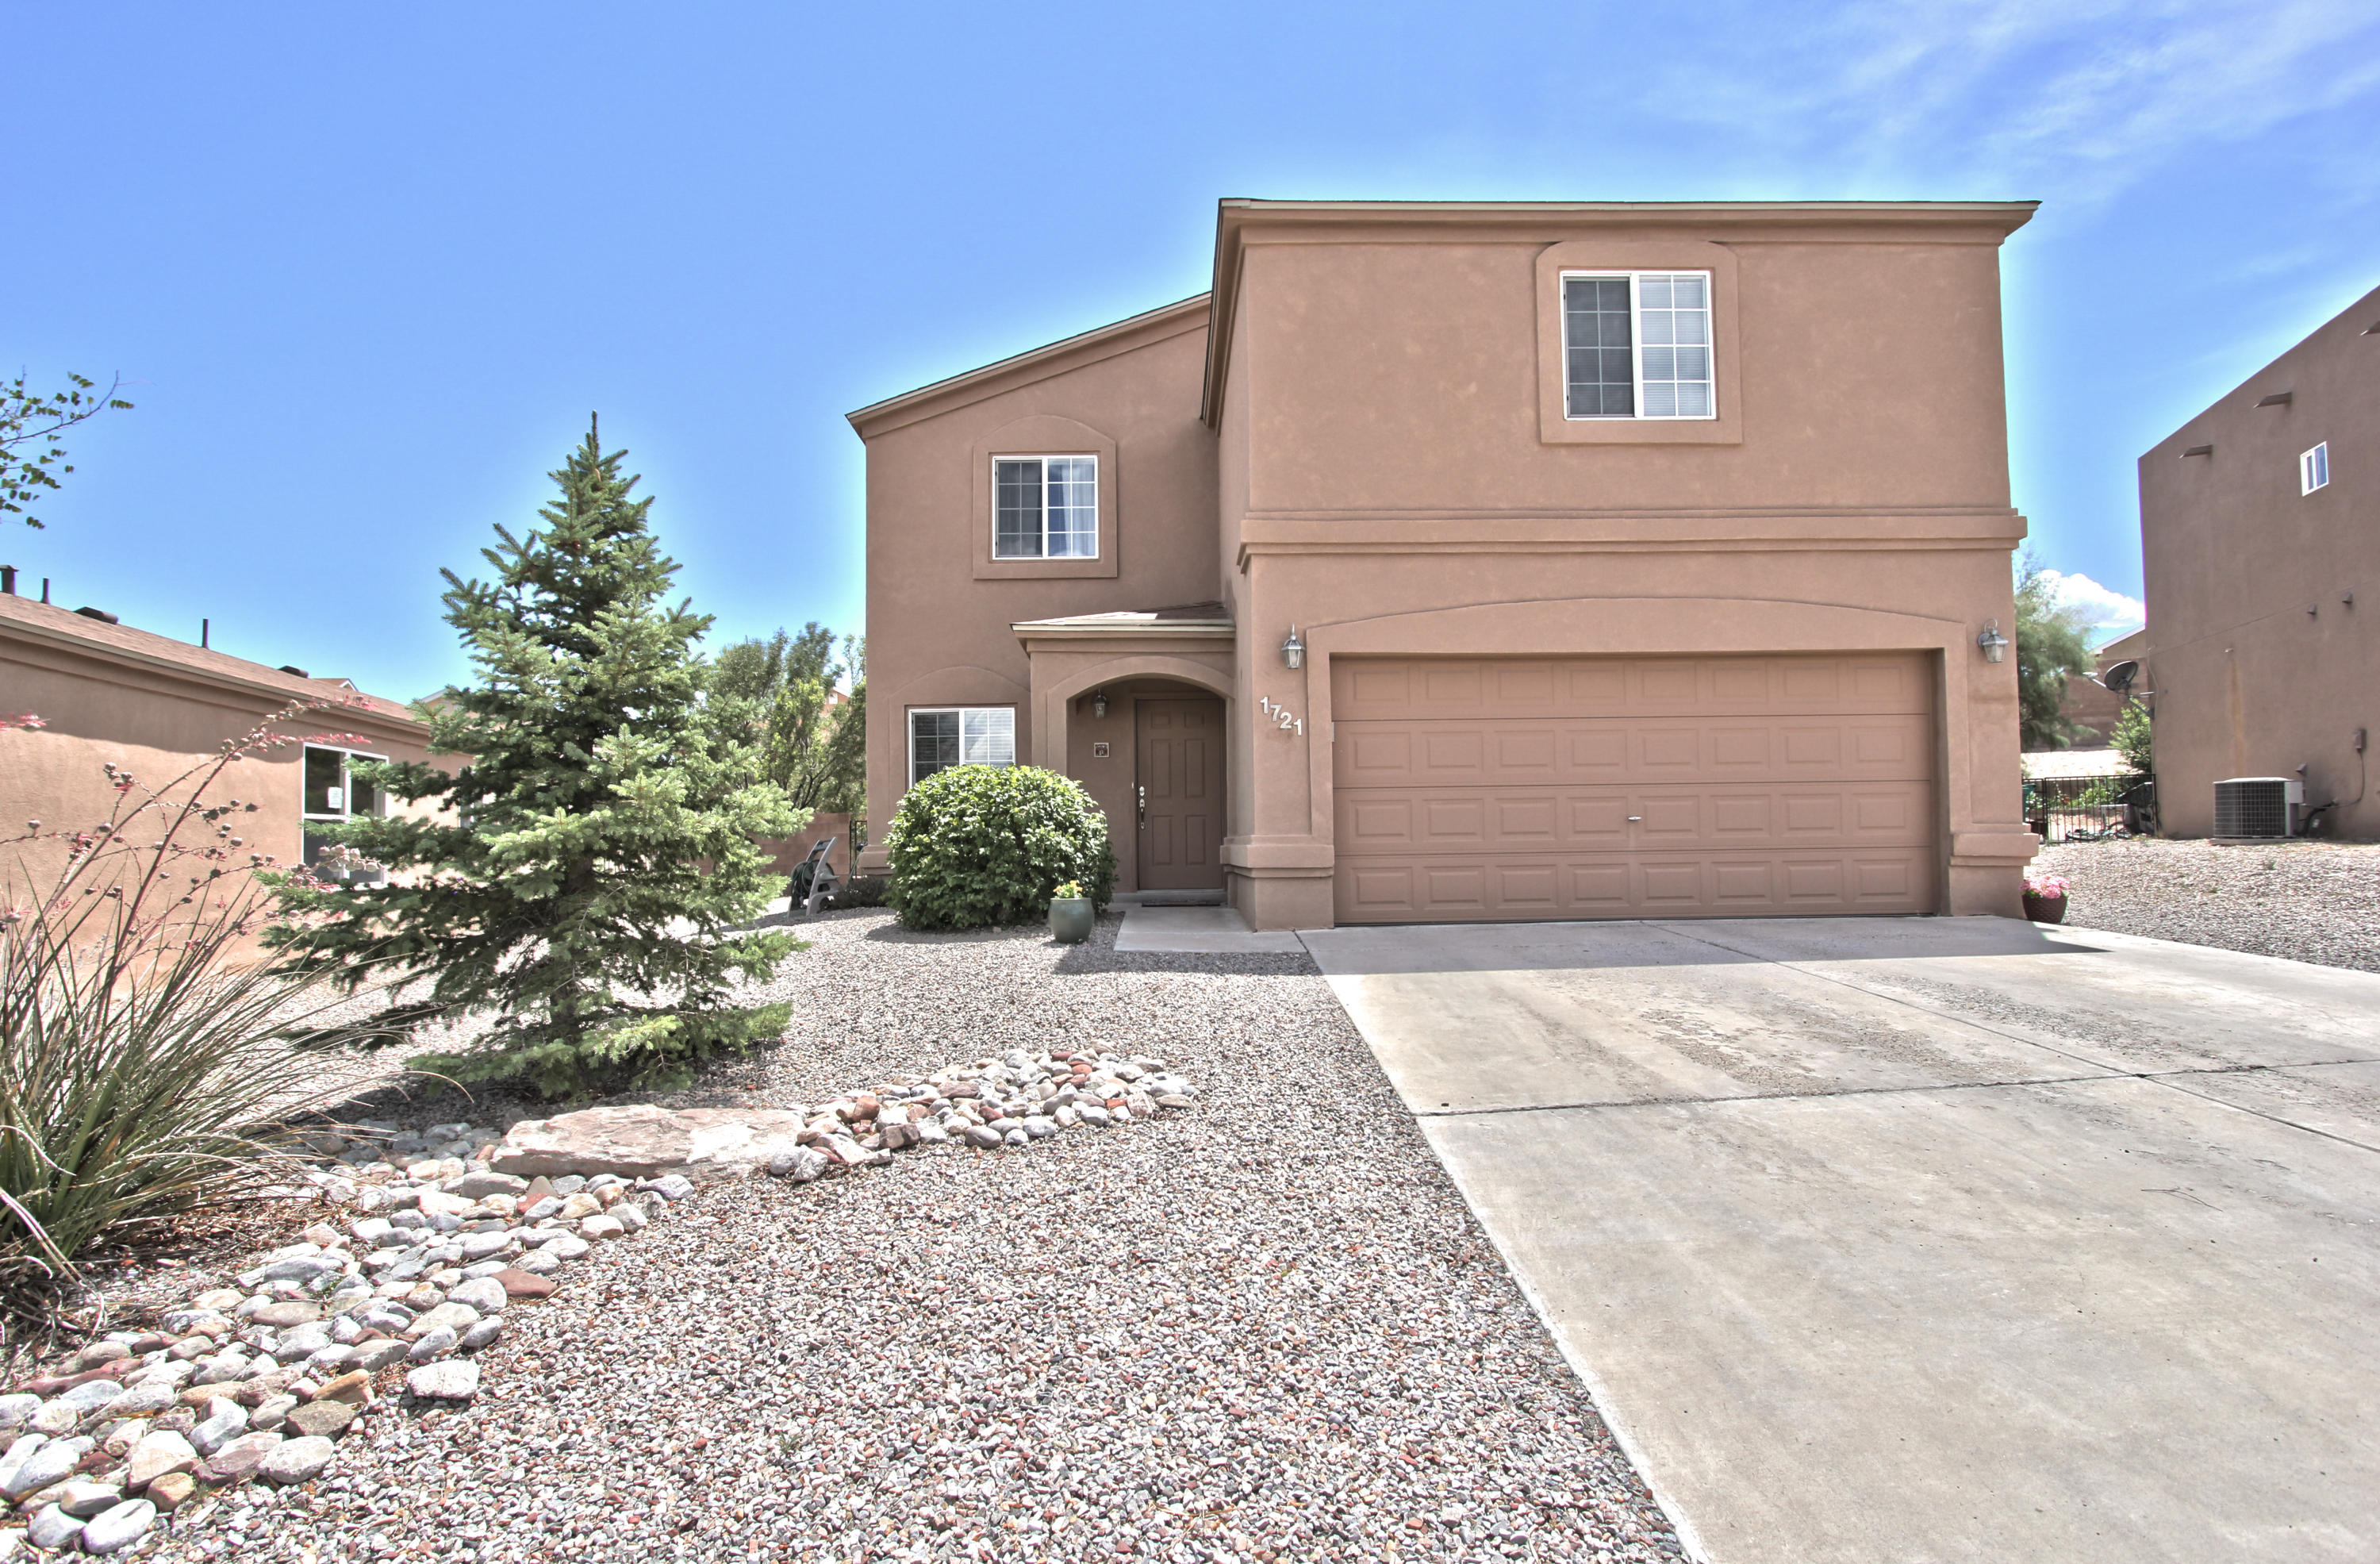 1721 SAN PEDRO Road NE Property Photo - Rio Rancho, NM real estate listing